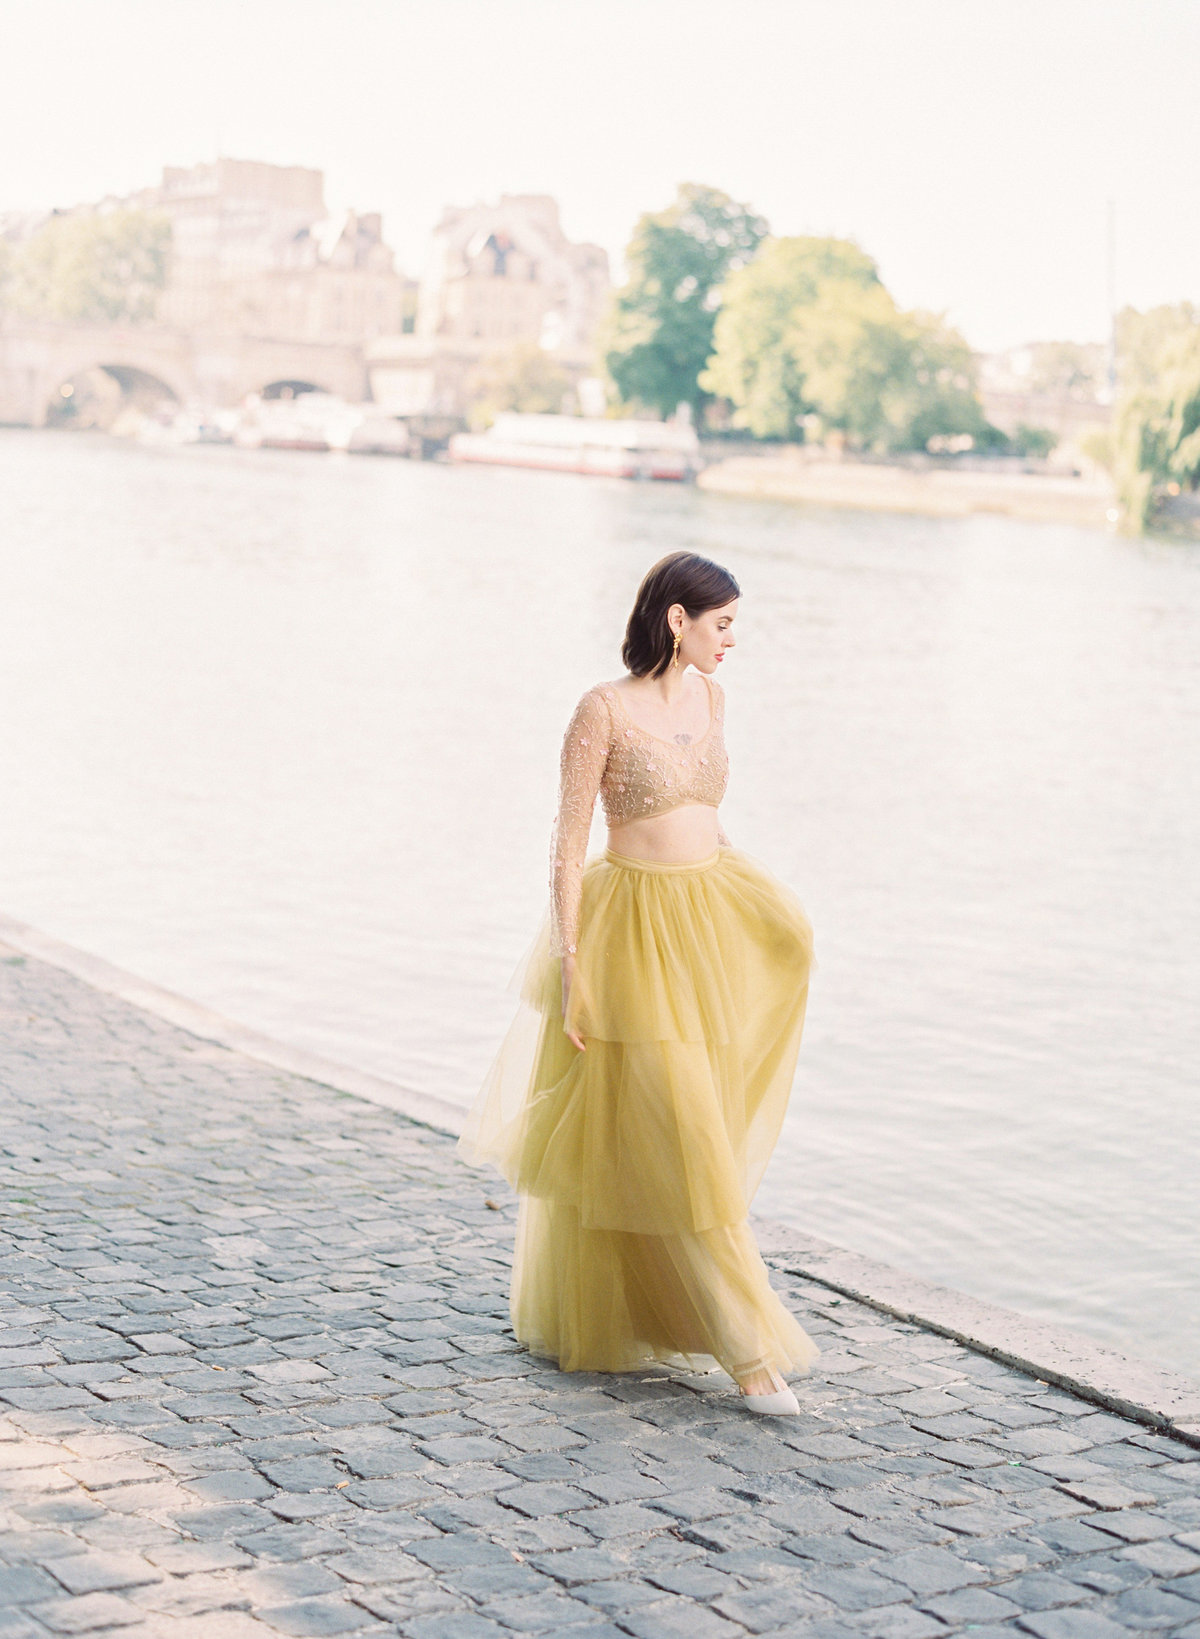 destination wedding photographer paris the lourve amelia soegijono 002